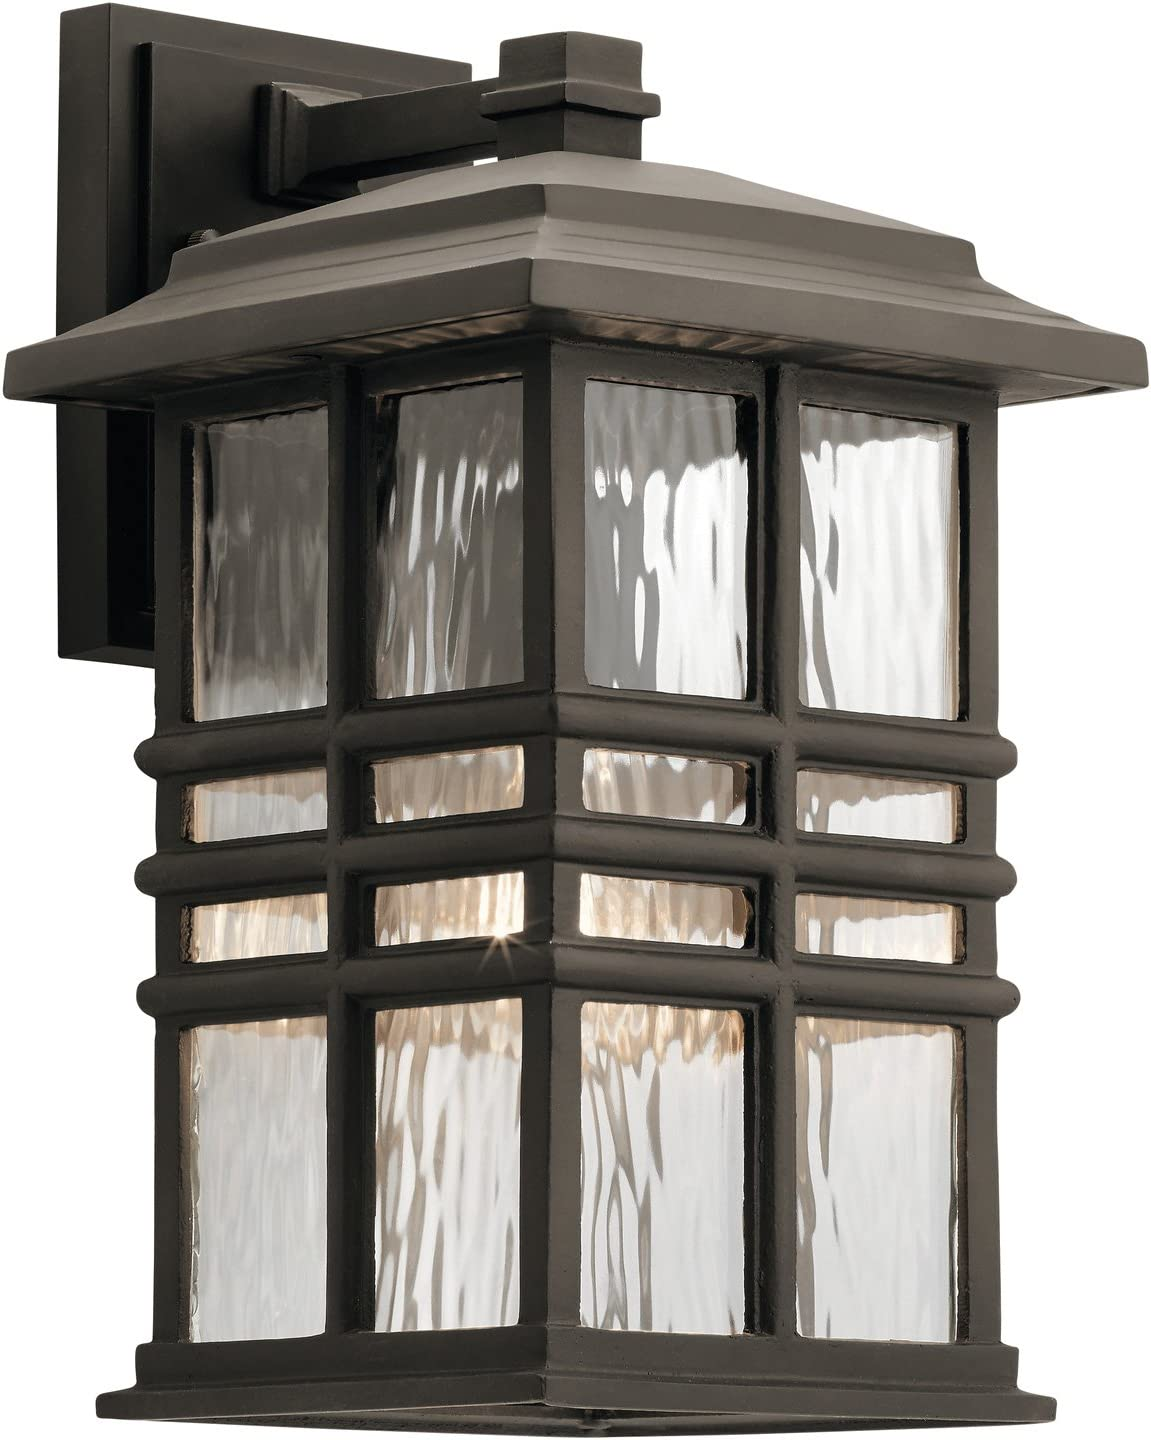 Kichler 49830OZ Beacon Square Outdoor Wall Sconce, 1 Light Incandescent 100 Watts, Olde Bronze